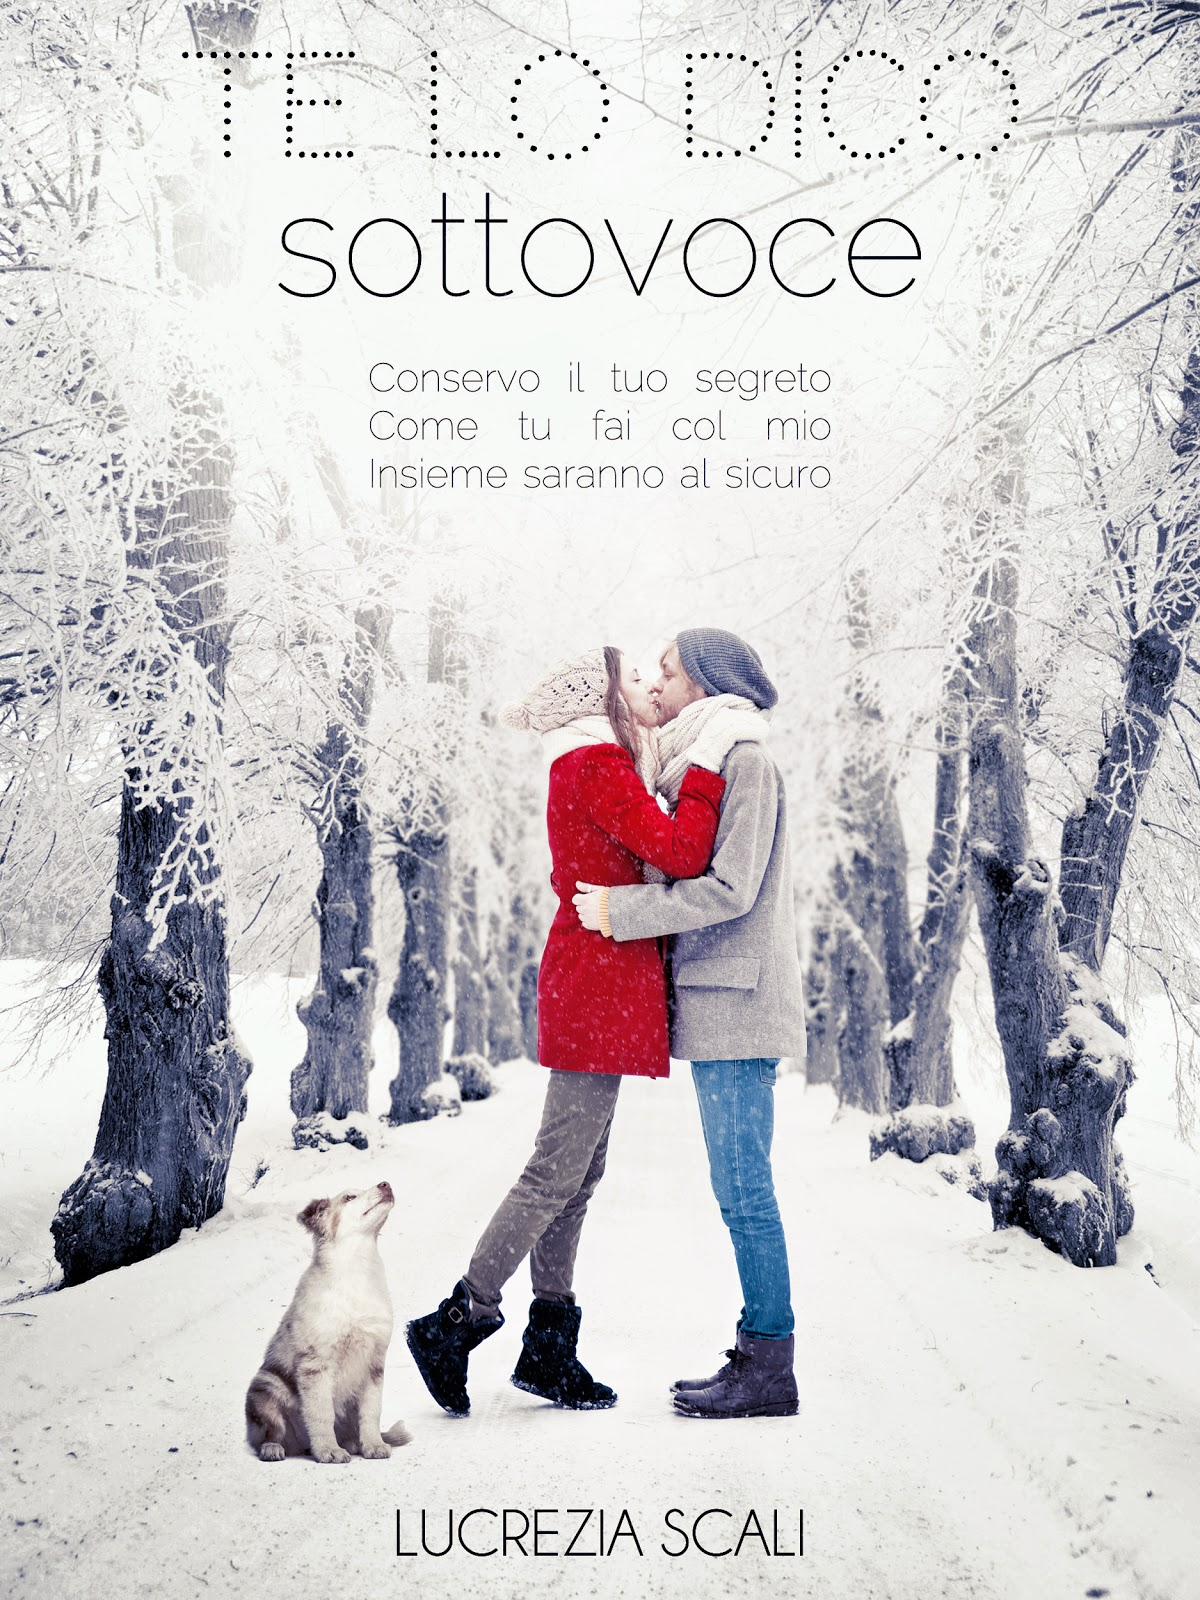 http://www.amazon.it/Te-dico-sottovoce-Lucrezia-Scali-ebook/dp/B00UBABU5S/ref=sr_1_1?s=digital-text&ie=UTF8&qid=1425893012&sr=1-1&keywords=lucrezia+scali